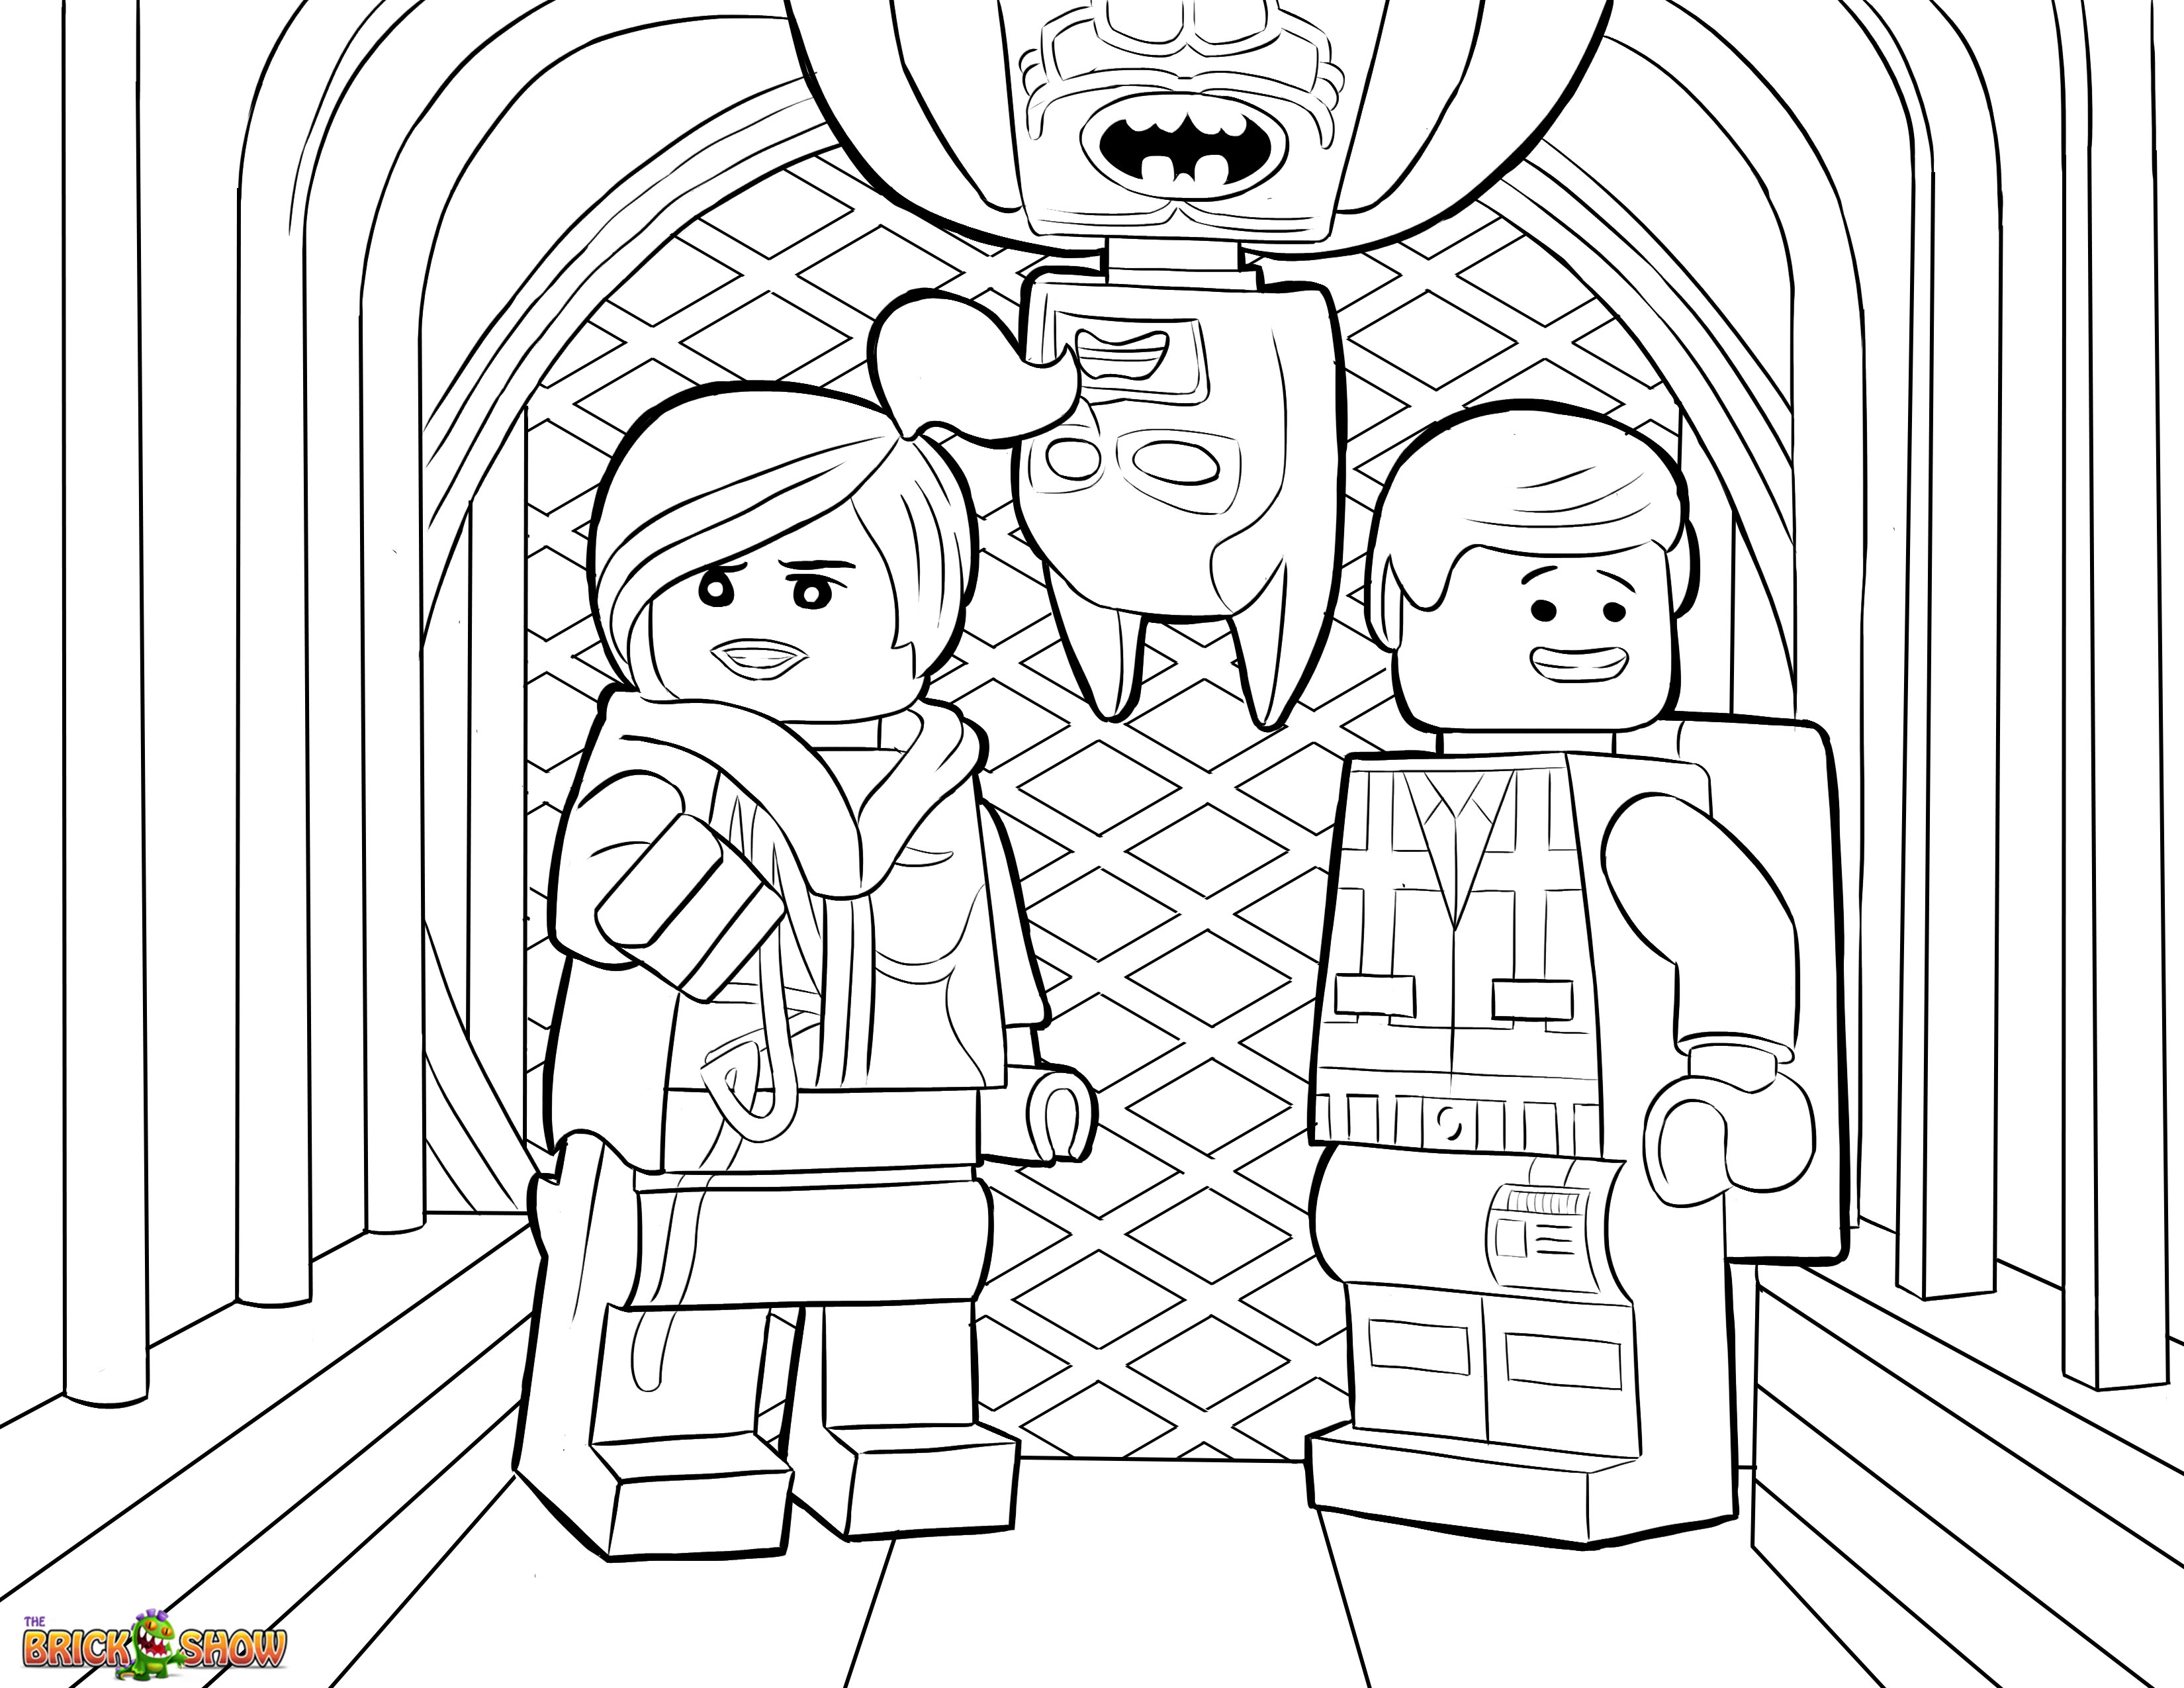 3300x2550 Printable Lego Batman Coloring Pages Gallery